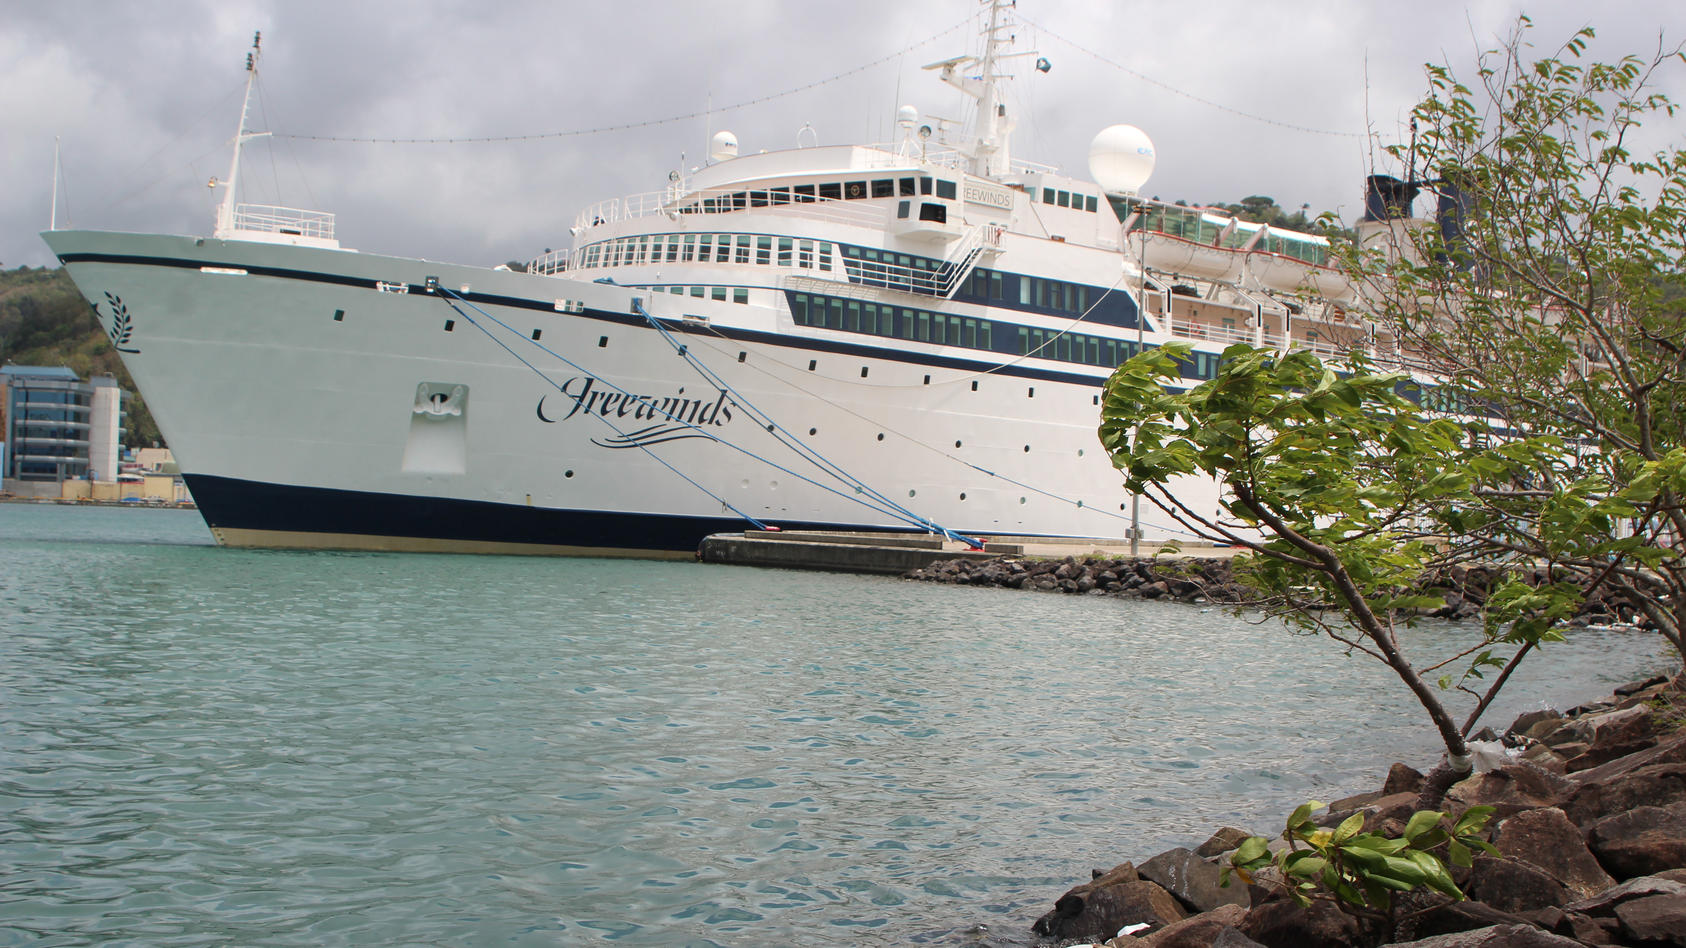 A 440-foot ship owned and operated by the Church of Scientology SMV Freewinds docked under quarantine from a measles outbreak in port near Castries St. Lucia